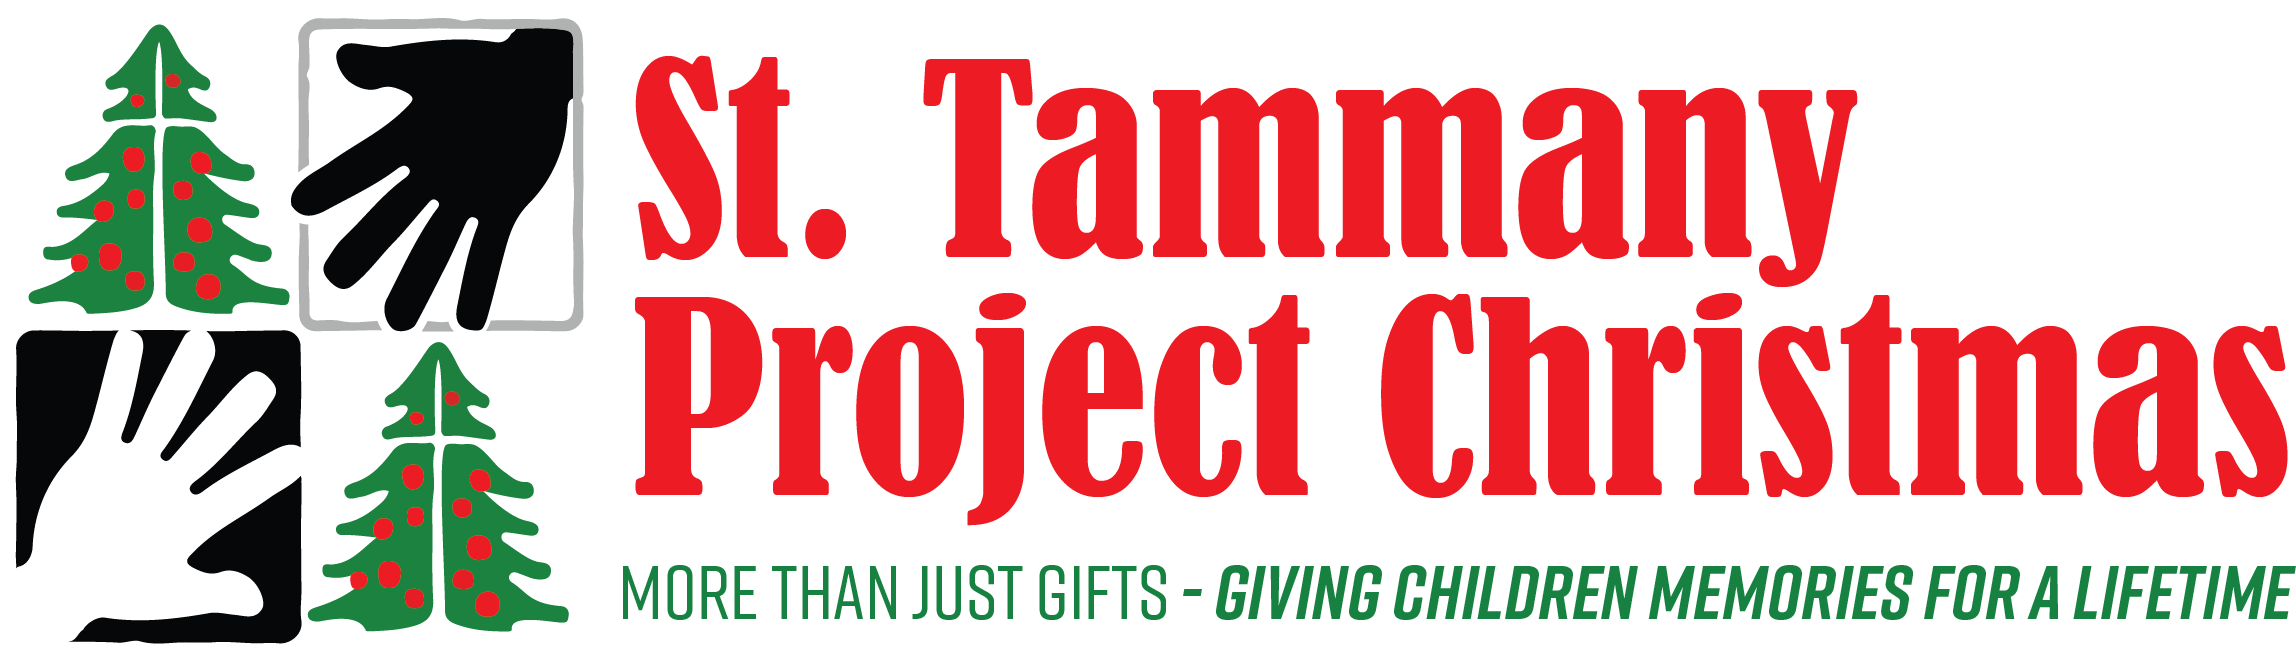 St. Tammany Project Christmas